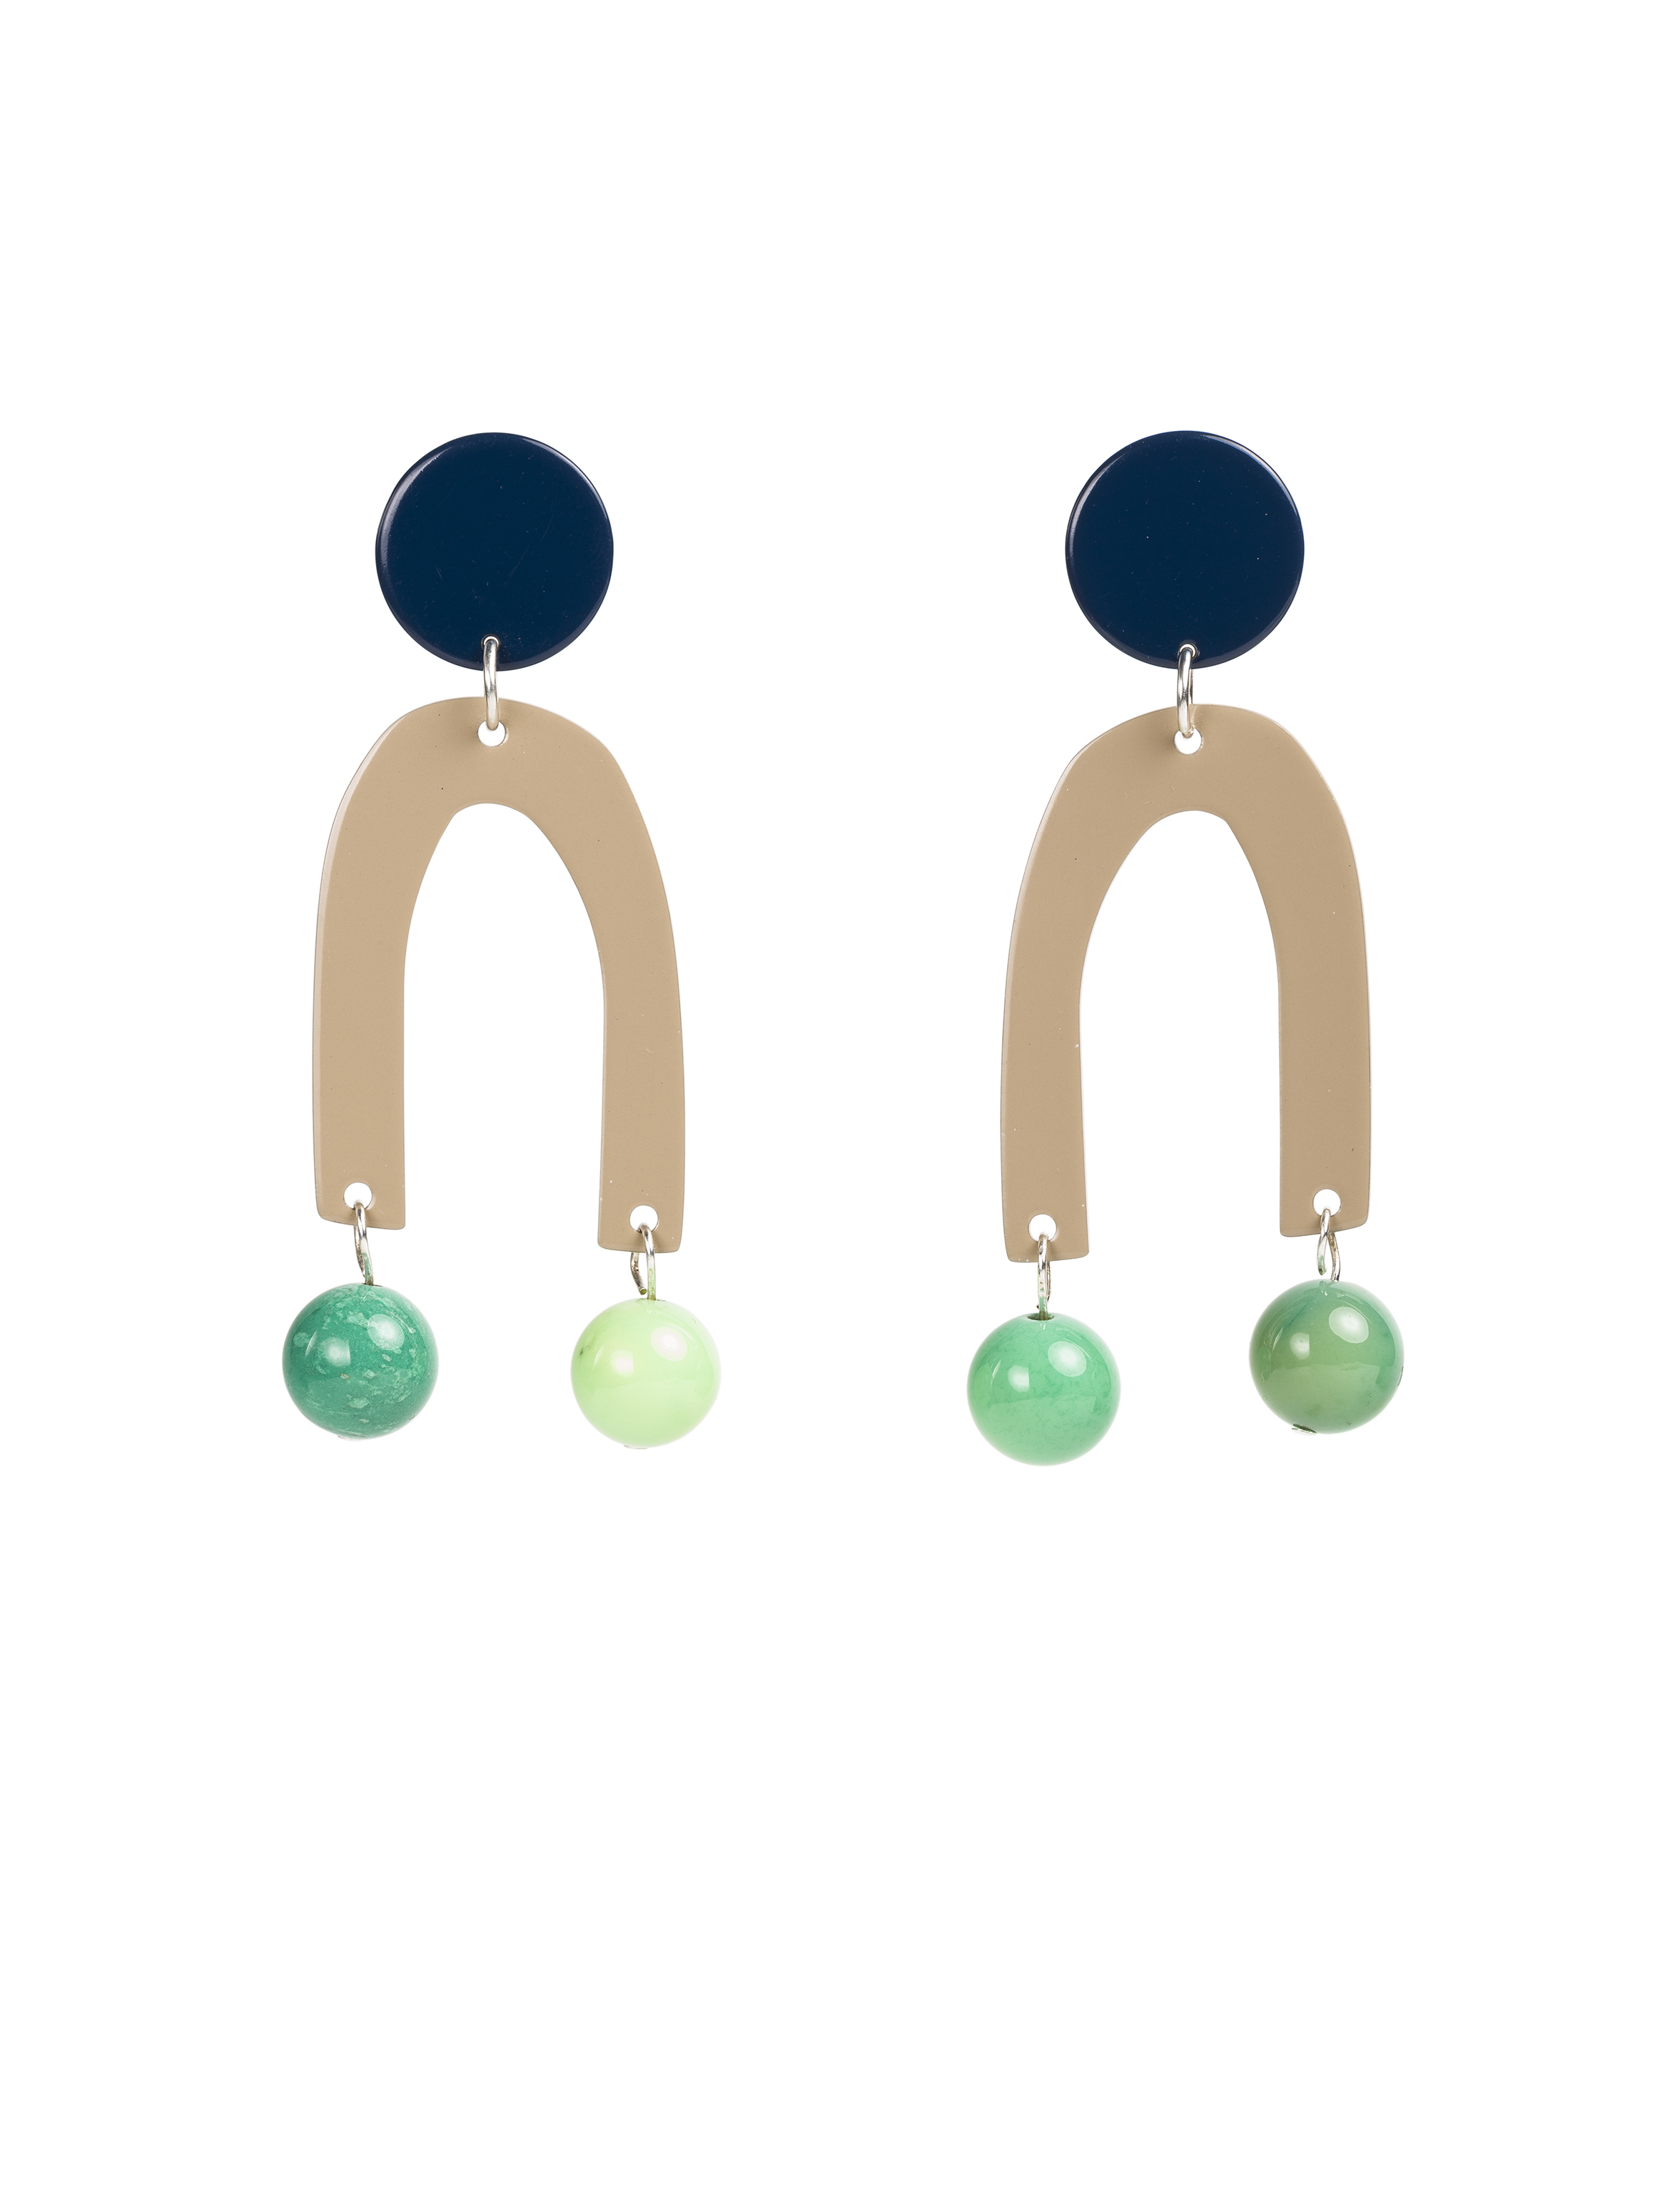 The Pendulum Earrings in Navy  - The Pendulum Earrings are full of beguiling movement! True to their name, floating agate balls sway from magnetic motifs. Navy and tan colour blocking brings colour to your style in an easy way.